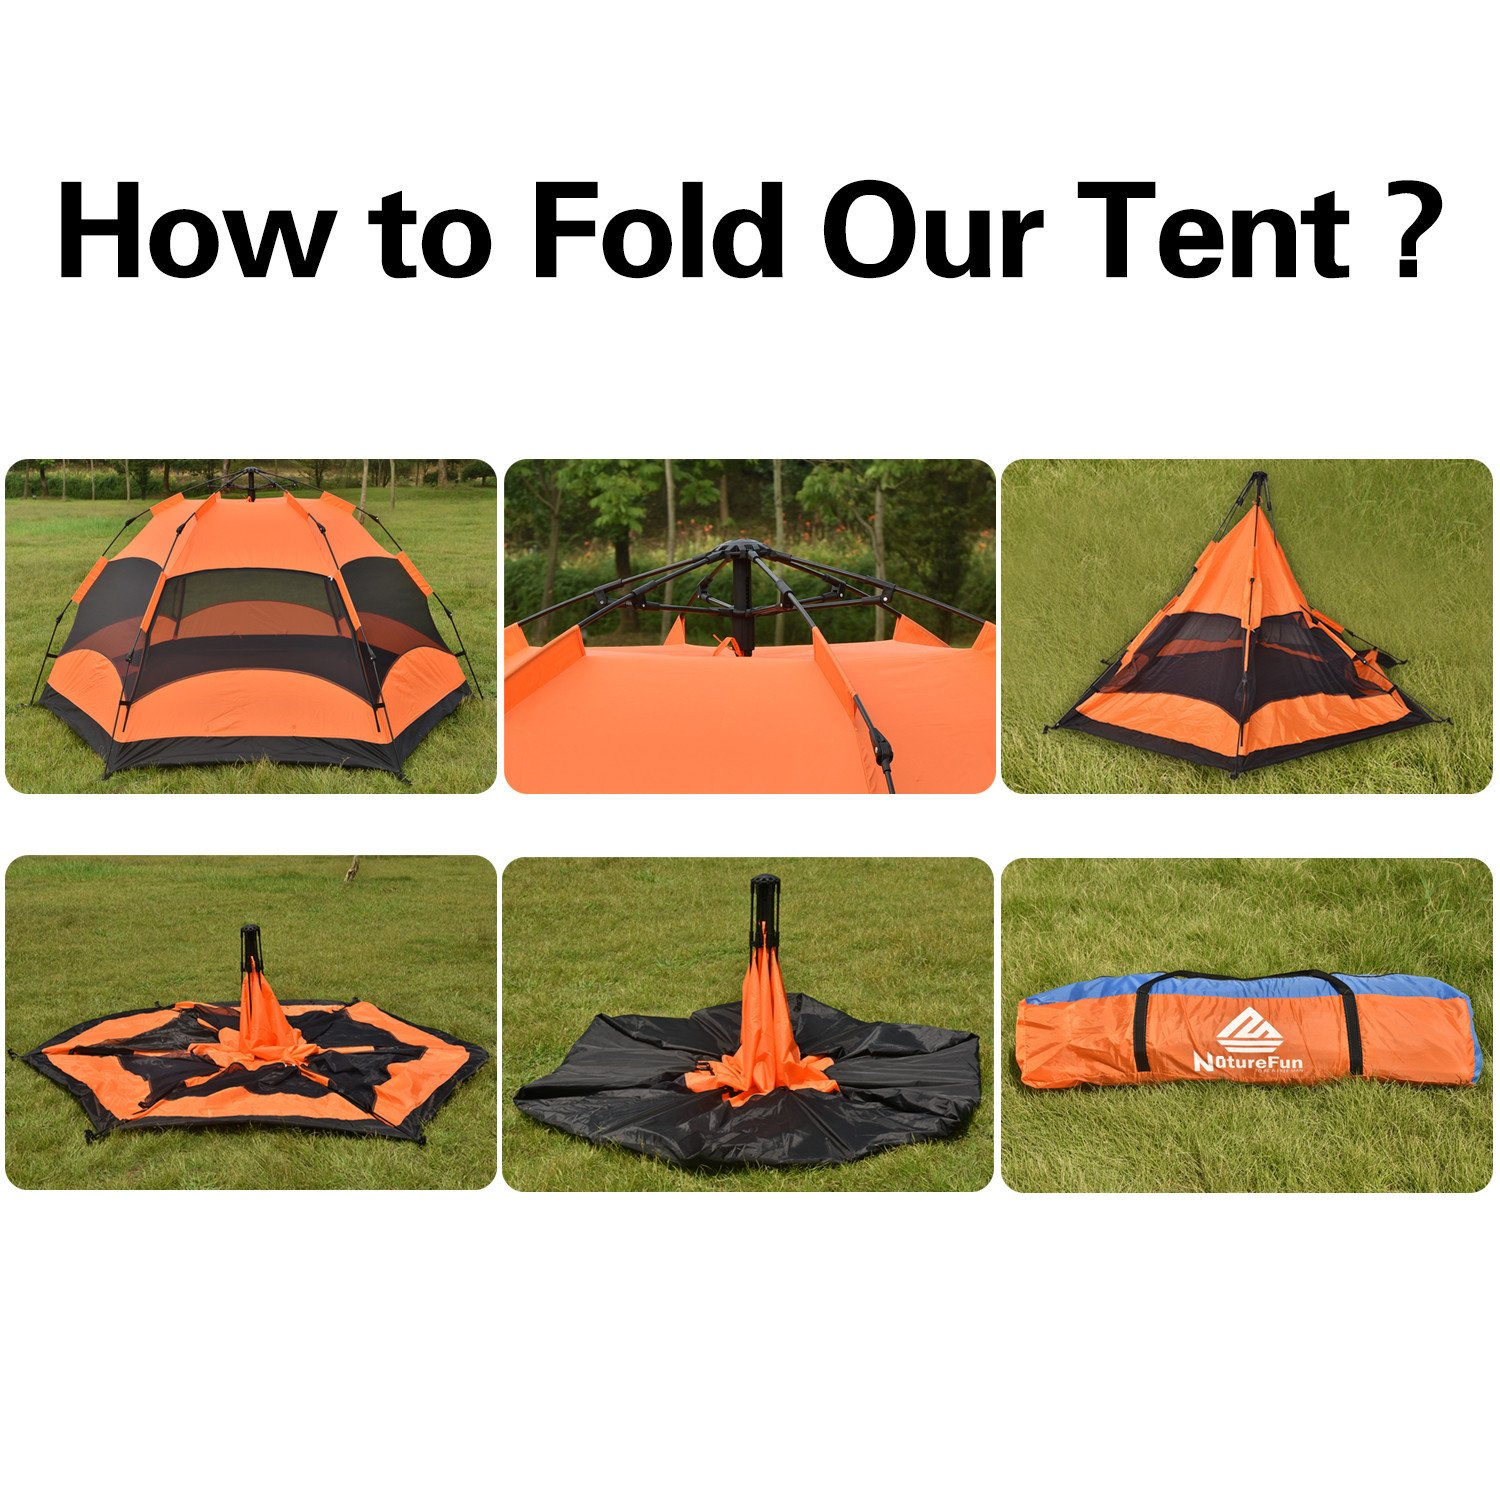 NatureFun 3-4 Person Waterproof C&ing Backpacking Family Automatic Spring Frame Tent 2 Doors4 Season260*140*240cm(L*H*W) Amazon.co.uk Sports u0026 ...  sc 1 st  Amazon UK & NatureFun 3-4 Person Waterproof Camping Backpacking Family ...